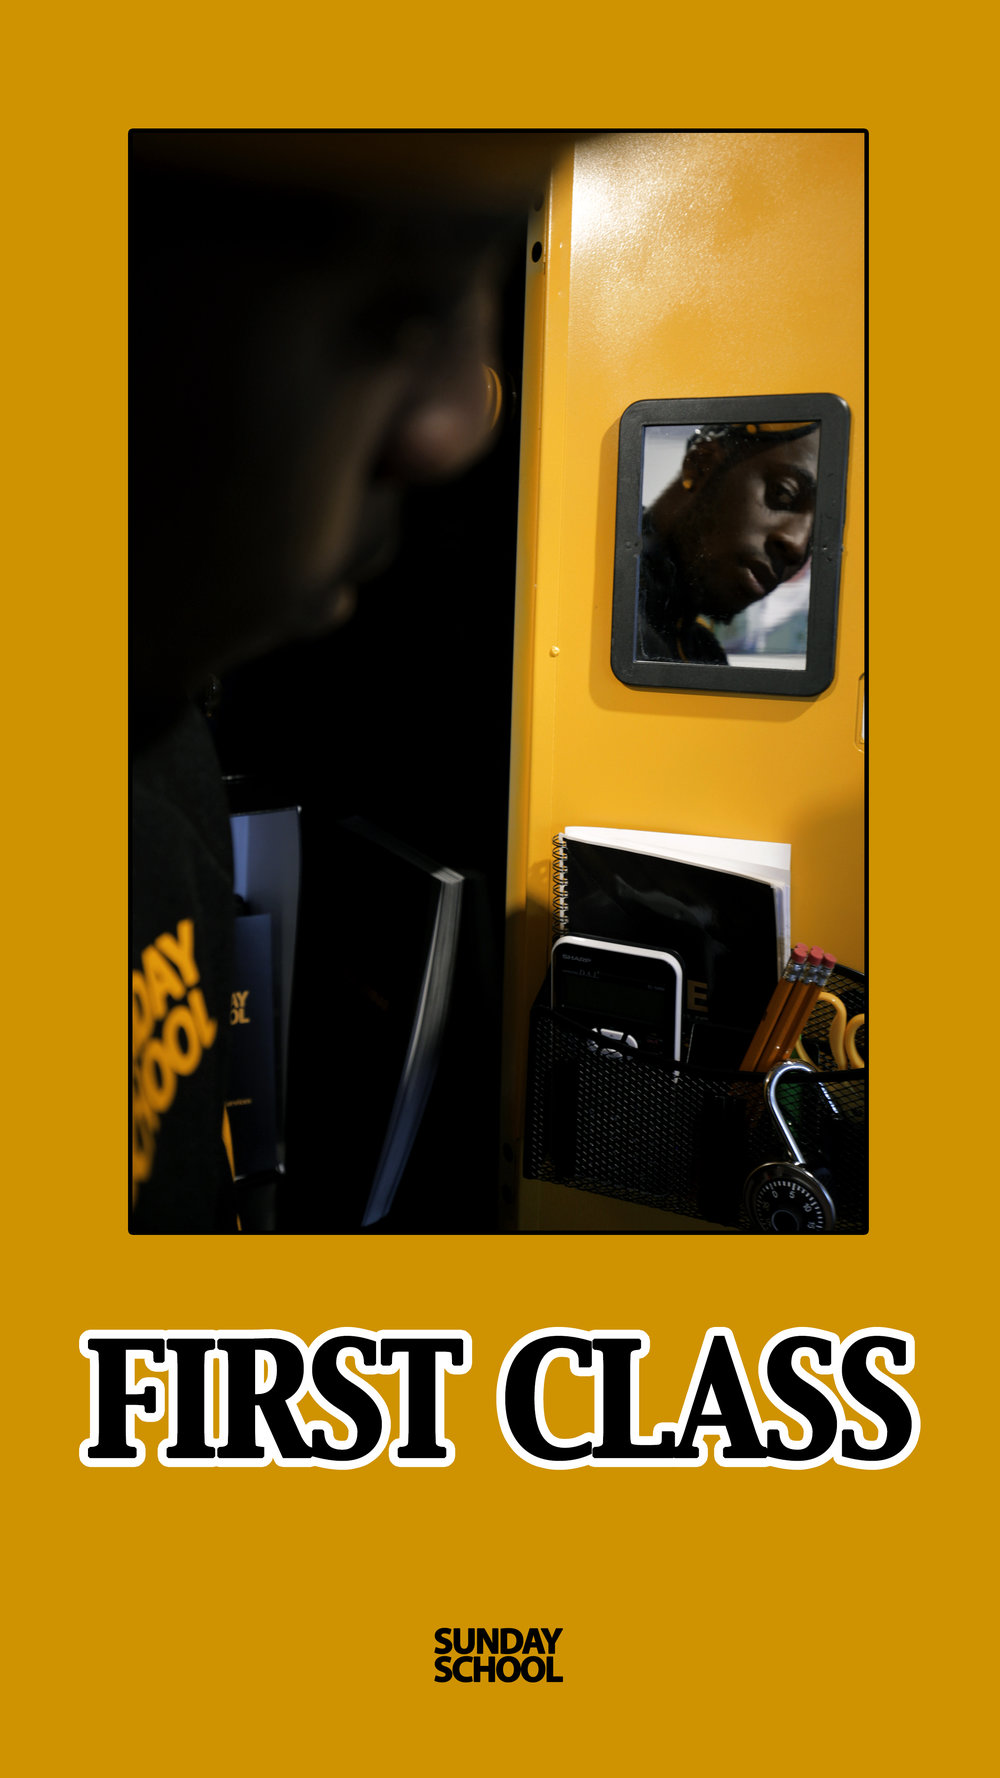 FIRSTCLASSSTORY1.jpg